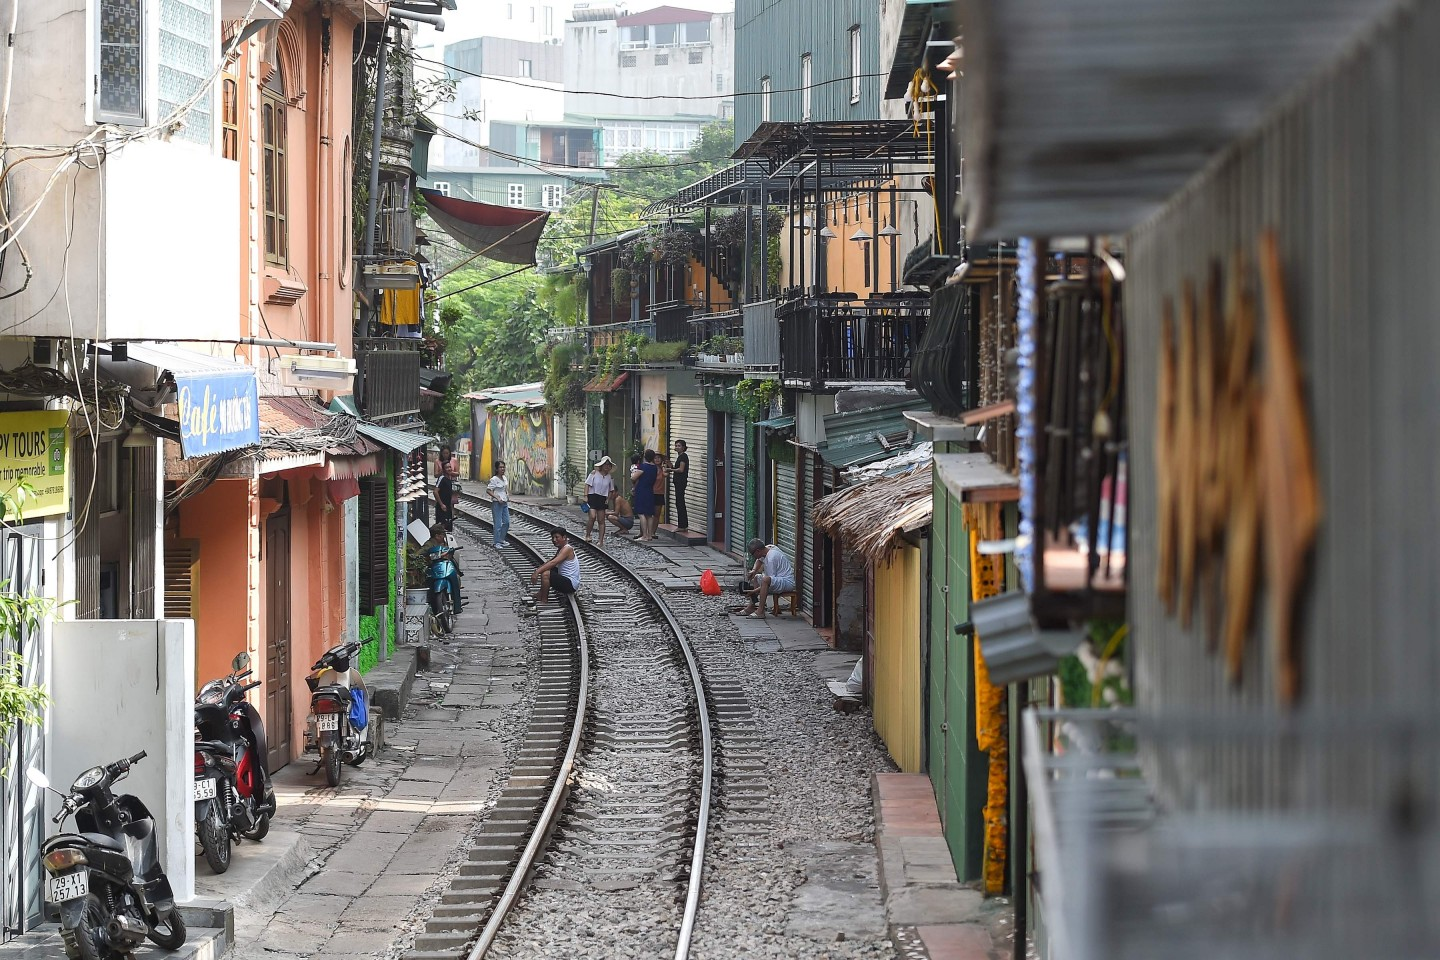 "Vietnam has a seemingly insatiable appetite for domestic infrastructure investment. A resident sits on Hanoi's popular train street on October 10, 2019 following a municipal authorities order to deal with cafes and ""ensure safety"" on the railway track. (Photo by Nhac NGUYEN / AFP)"